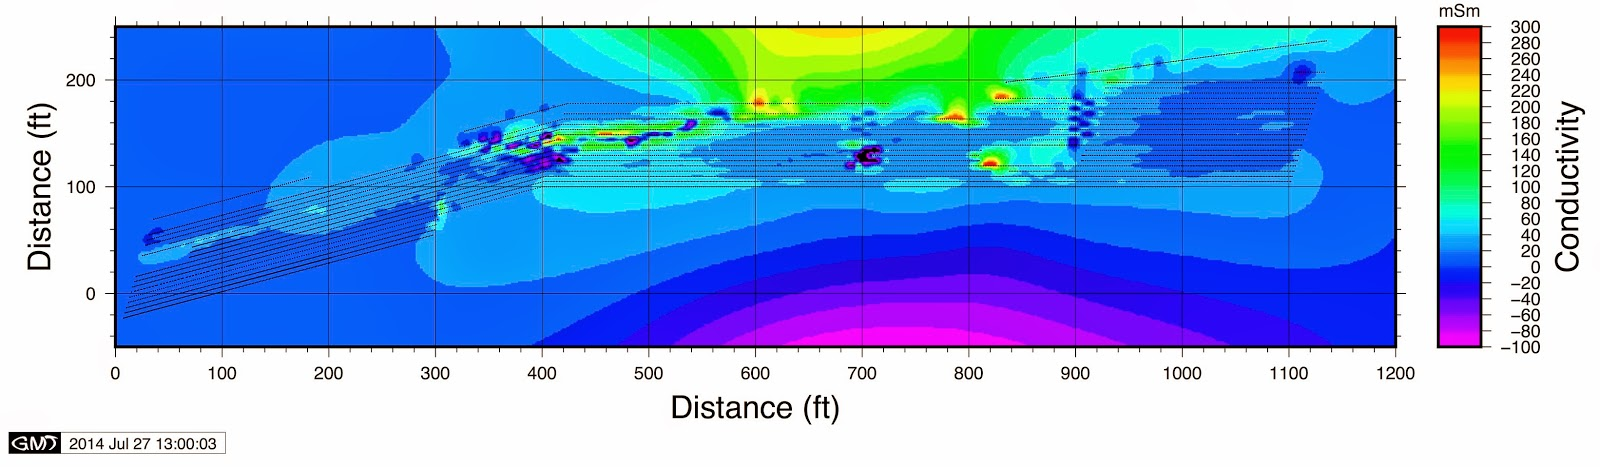 Seismos 2014 about 1200 ground conductivity readings from an em31 meter negative values indicate metal objects in the near surface conductivities between 5 20 msm fandeluxe Choice Image